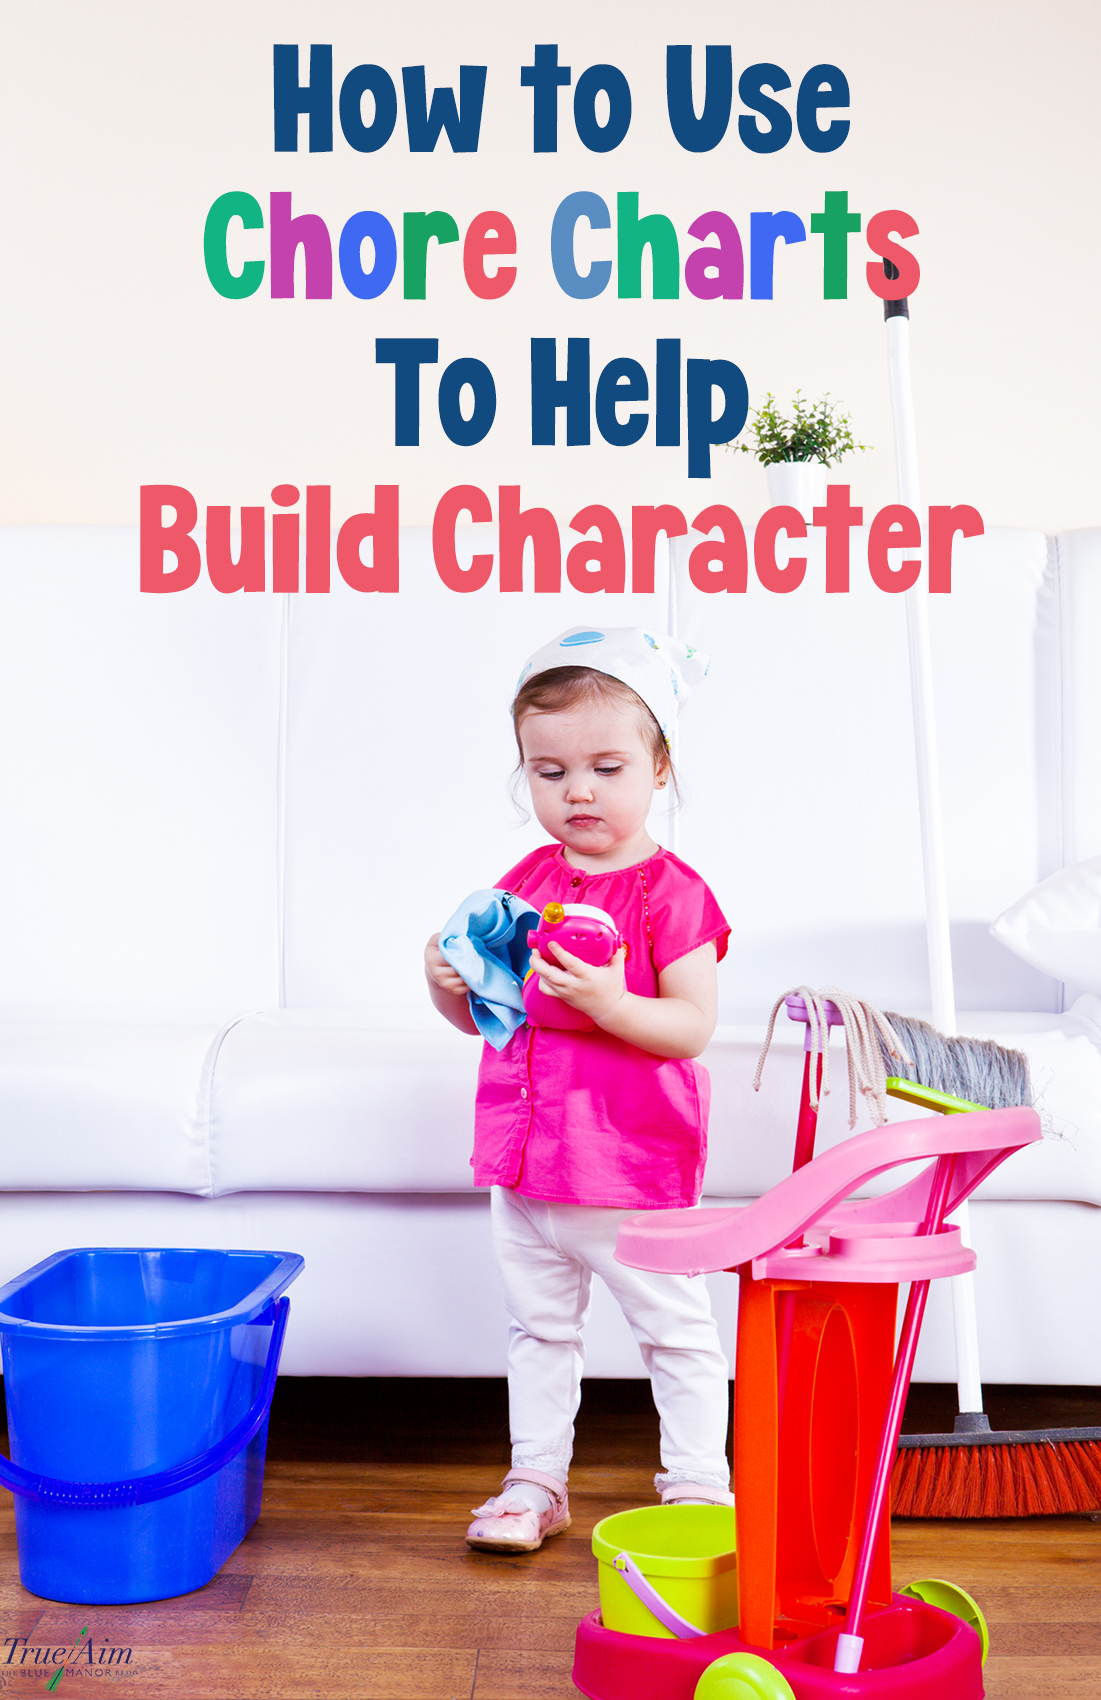 Chores help kids contribute to the family and can help them grow up into responsible adults. Here's ways to use chore charts to help build character!